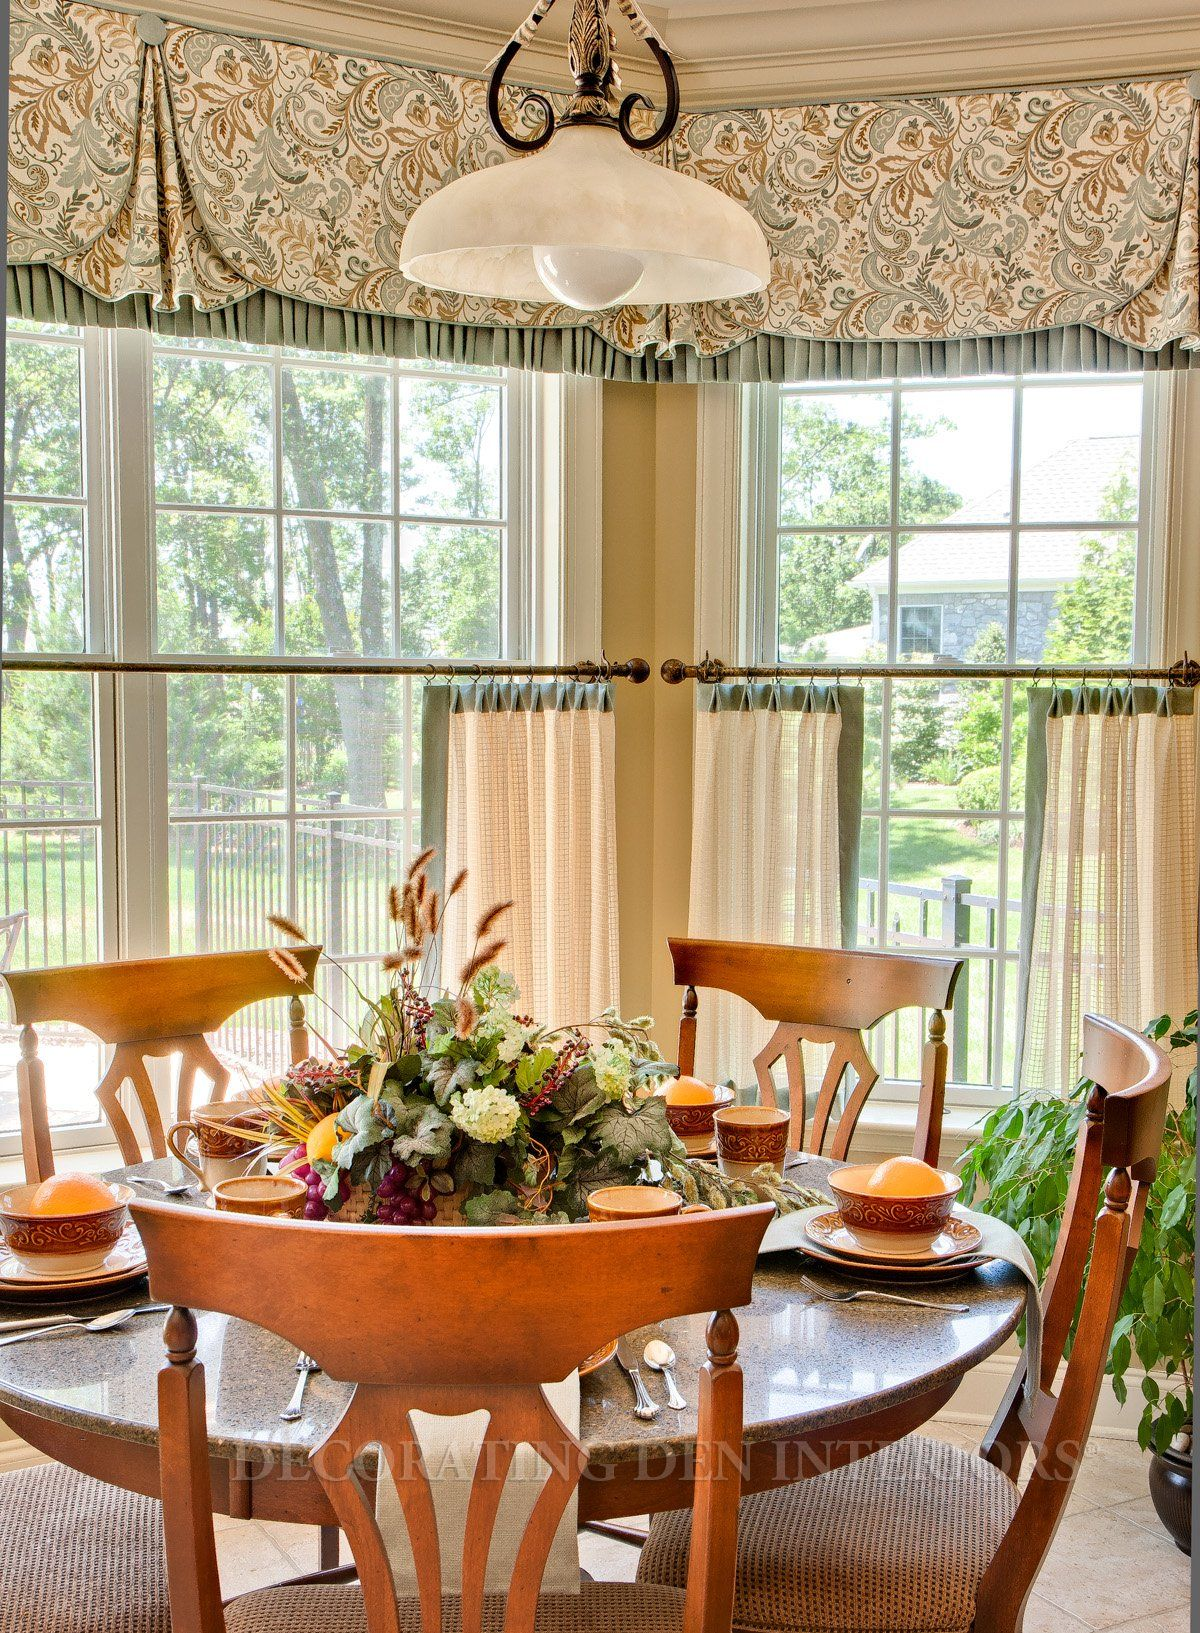 I Love This Dining Room It Has Such A Country Feel To It